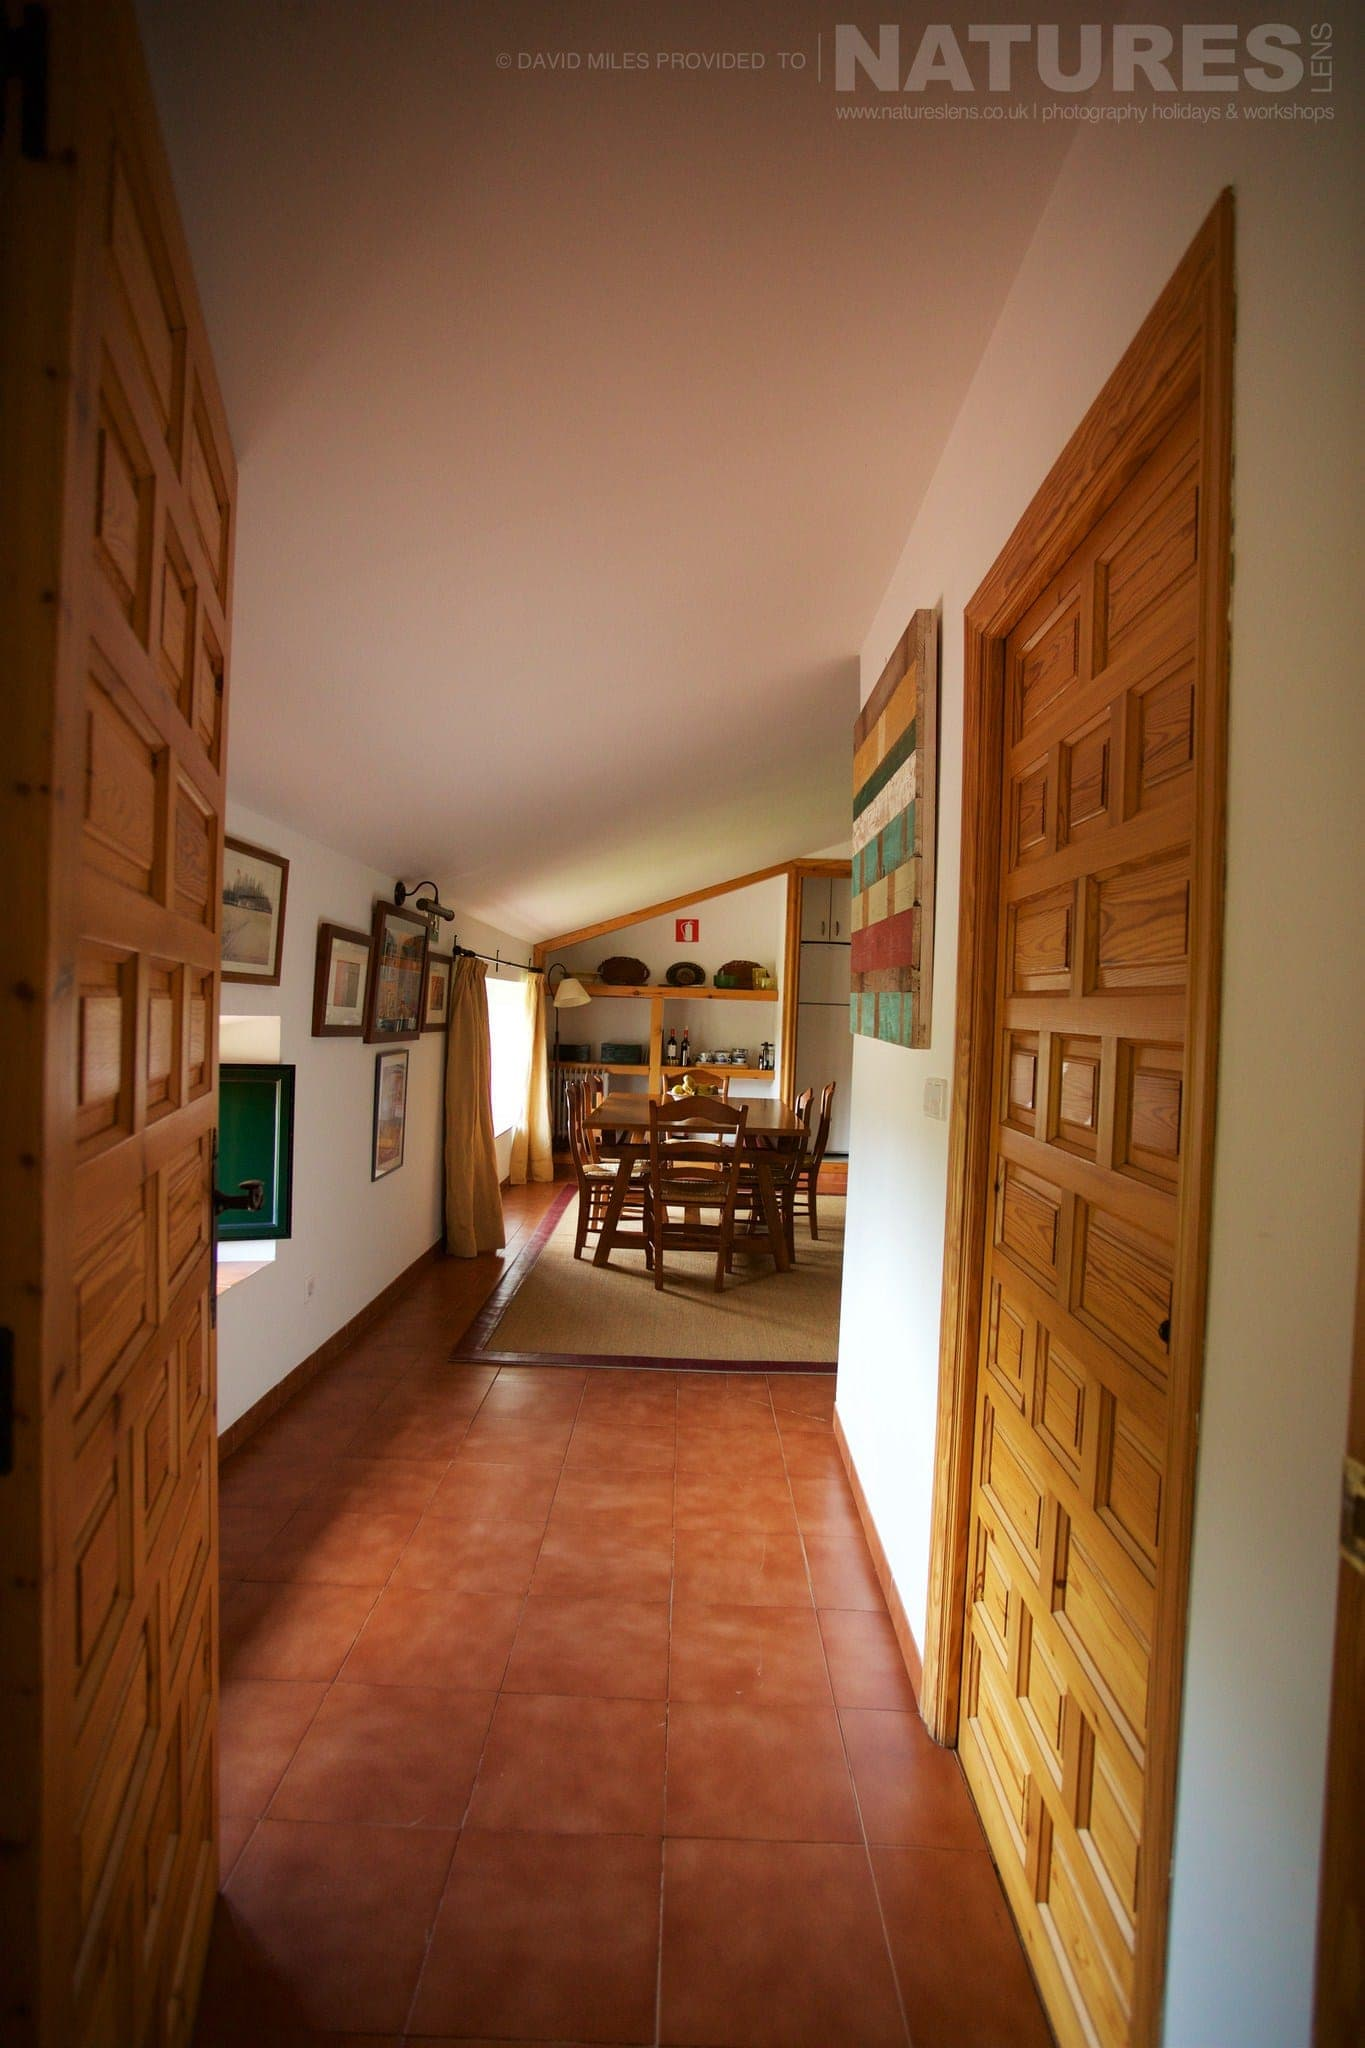 The Interior Of The Casa Which Is The Base For The Holiday Stay   Photographed On The Estate Used For The NaturesLens Eagles Of Extremadura Photography Holiday